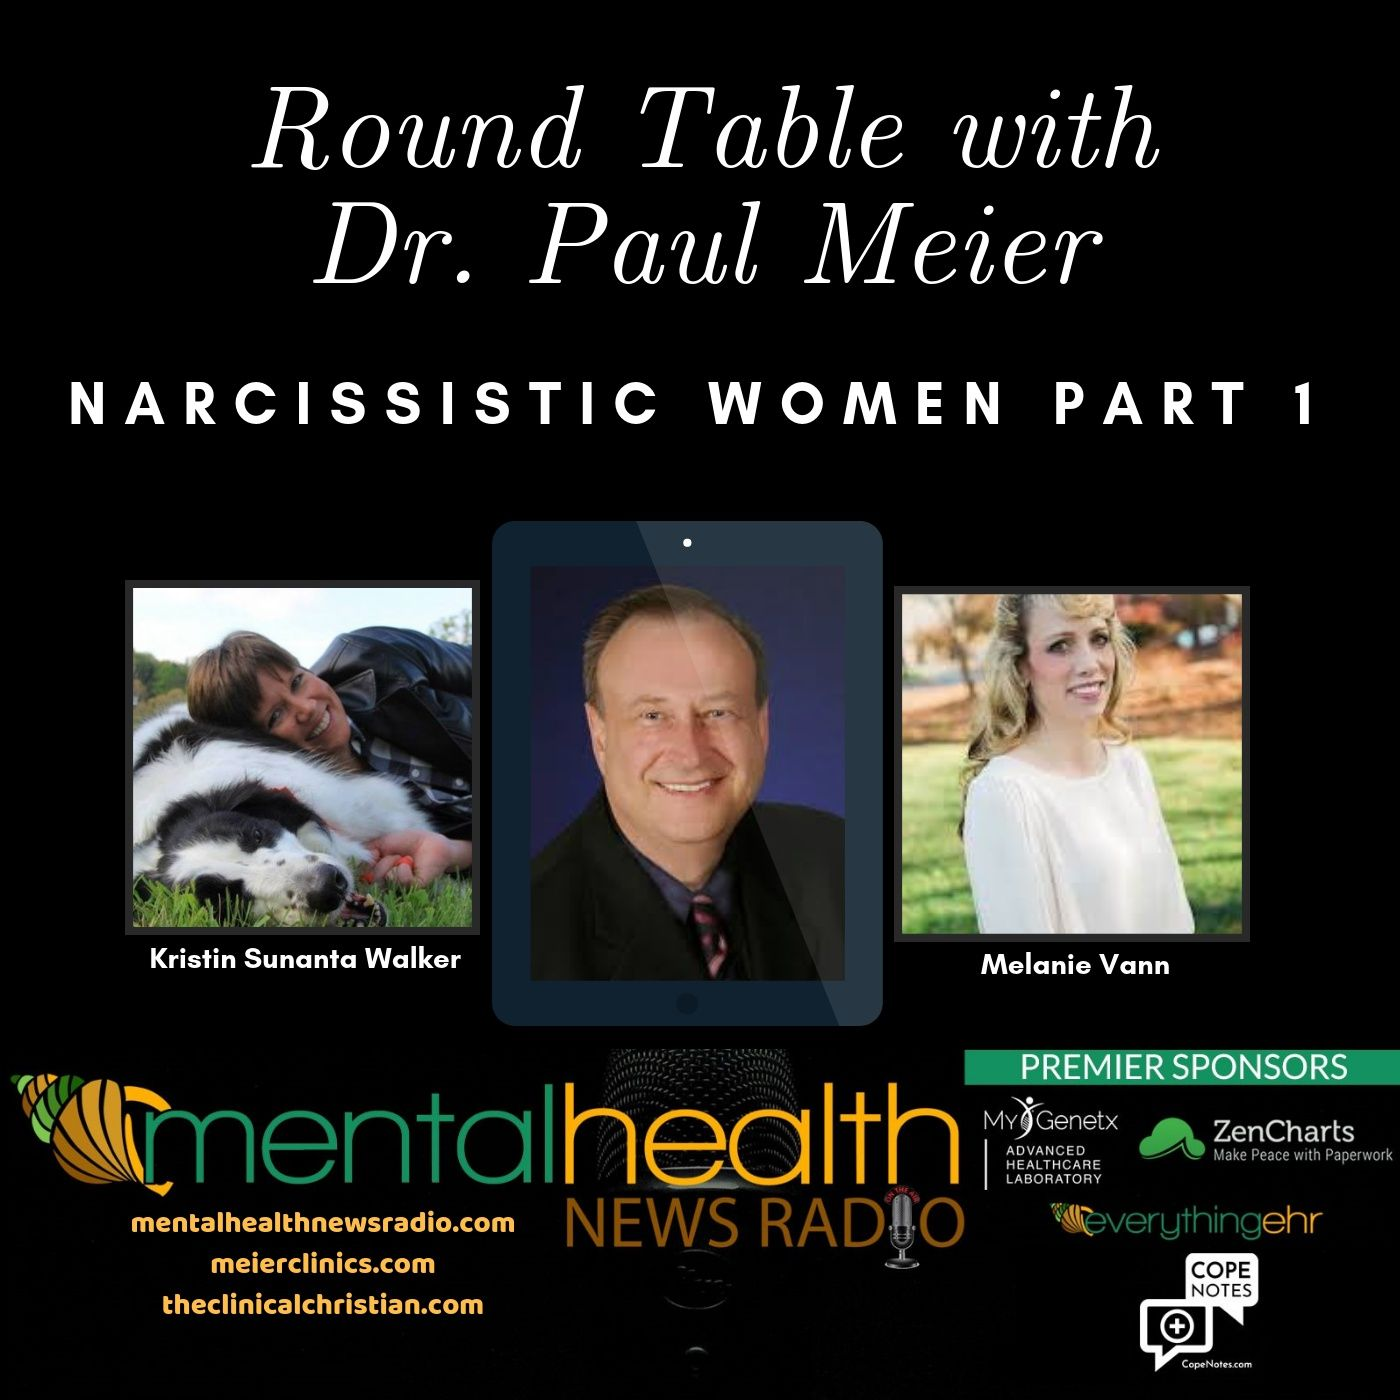 Mental Health News Radio - Round Table with Dr. Paul Meier: Narcissistic Women I